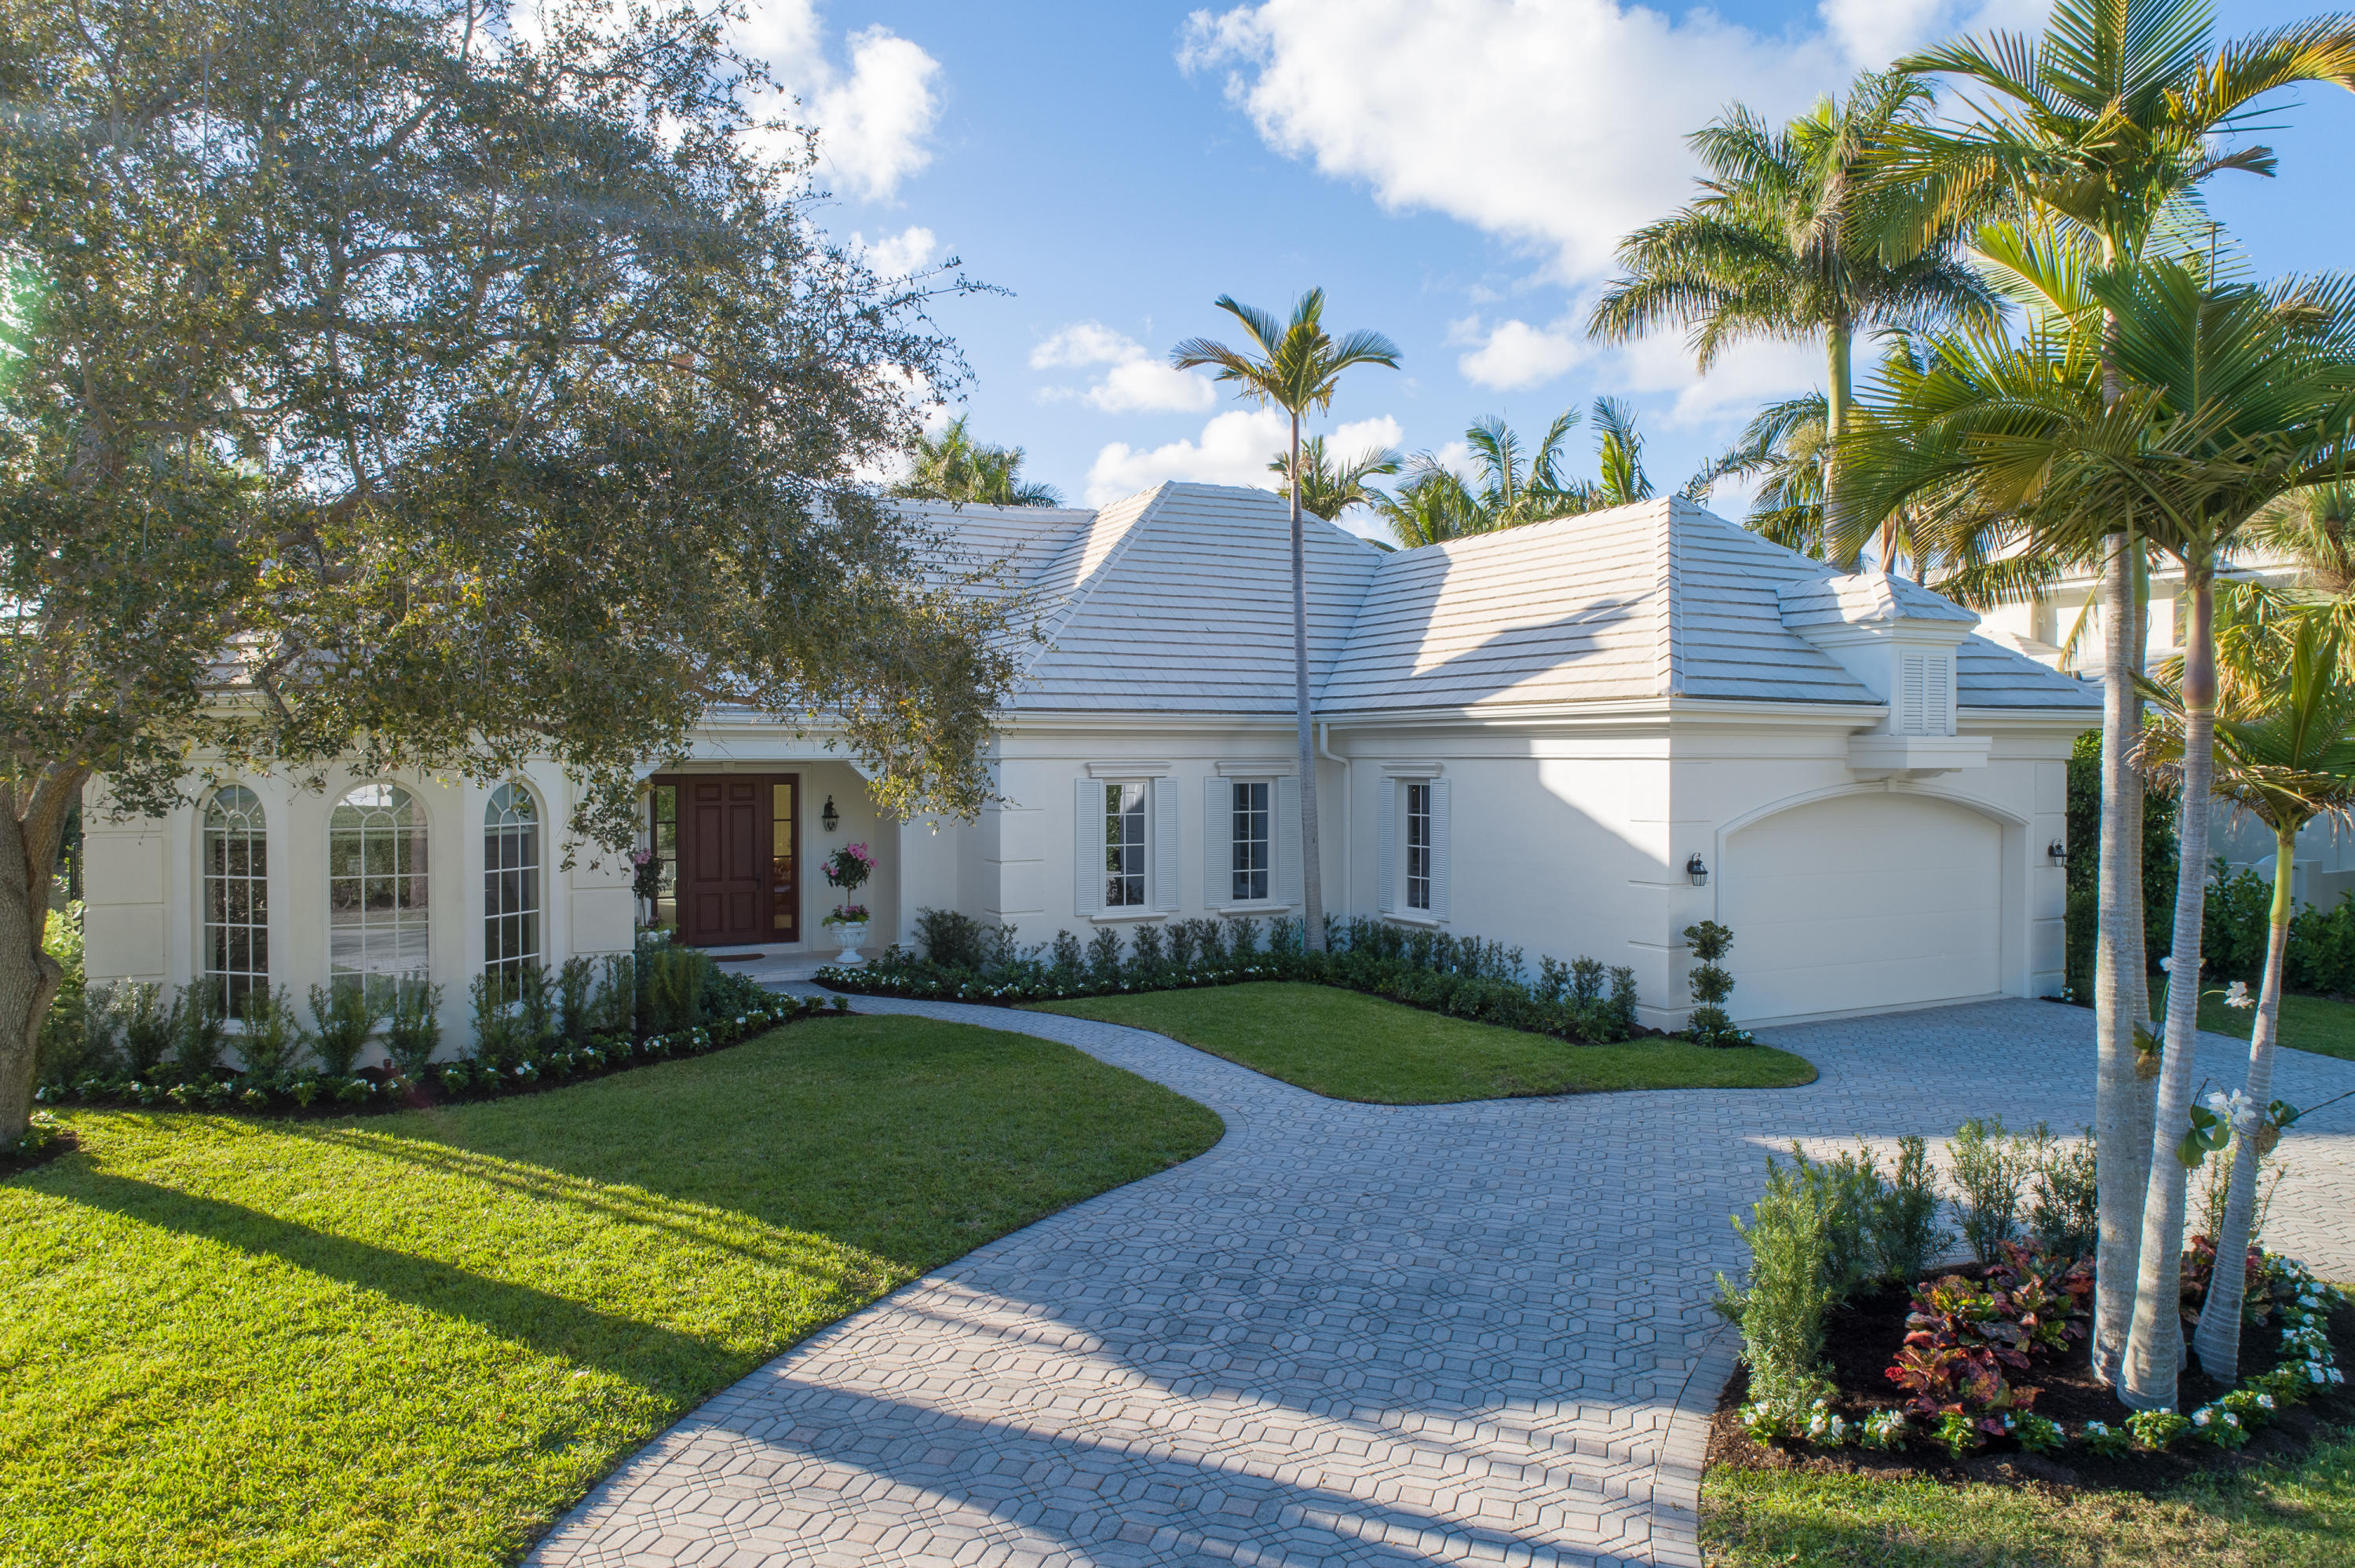 Enjoy the South Florida Lifestyle in this Renovated, Upscale Gulf Stream HomeGulf Stream is a small, exclusive town in Palm Beach County with a population of fewer than 1000 residents. Located in a tranquil, safe enclave in the heart of Gulf Stream, this home will impress you with the quality craftsmanship & millwork that is highlighted in every room. With 3566-SF the home provides 5/BR-4/BA, a living  with fireplace, and a family room with wet bar for entertaining friends and family. The home's spaciousness is accented by vaulted, pecky cypress, coffered & volume tray ceilings as well as beautiful hardwood floors, wide crown moldings, and baseboards throughout, and every ground floor room opens out to the terrace through oversize sliding impact glass doors. The highly desirable open plan eat-in kitchen features a center-island prep area with a custom built-in wine rack, multiple granite counter tops and wood cabinetry with excellent storage space. The kitchen provides easy access to the formal dining room as well as to both the living and family room. The family room opens directly, through the impact glass sliding doors, to the covered lanai with pecky cypress ceiling & lights for poolside entertaining day or night.   You'll be impressed by the beautifully landscaped yard and on balmy Florida evenings, you'll enjoy the benefits of lovely ocean breezes coming off ocean and beach located just a block away.   The ground floor master bedroom has an expansive walk-in closet, a large master bath with raised step-up tub, a separate glass enclosed shower and marble floors. The upstairs bedrooms are perfect for guests or a growing family, allowing for quiet privacy away from the master bedroom below.   For families with school-age children, the home is located on the same street as the prestigious Gulf Stream School (PK-8) a few blocks away. The safety and security of the neighborhood provided by the town's police department means you'll have complete peace of mind, and yo